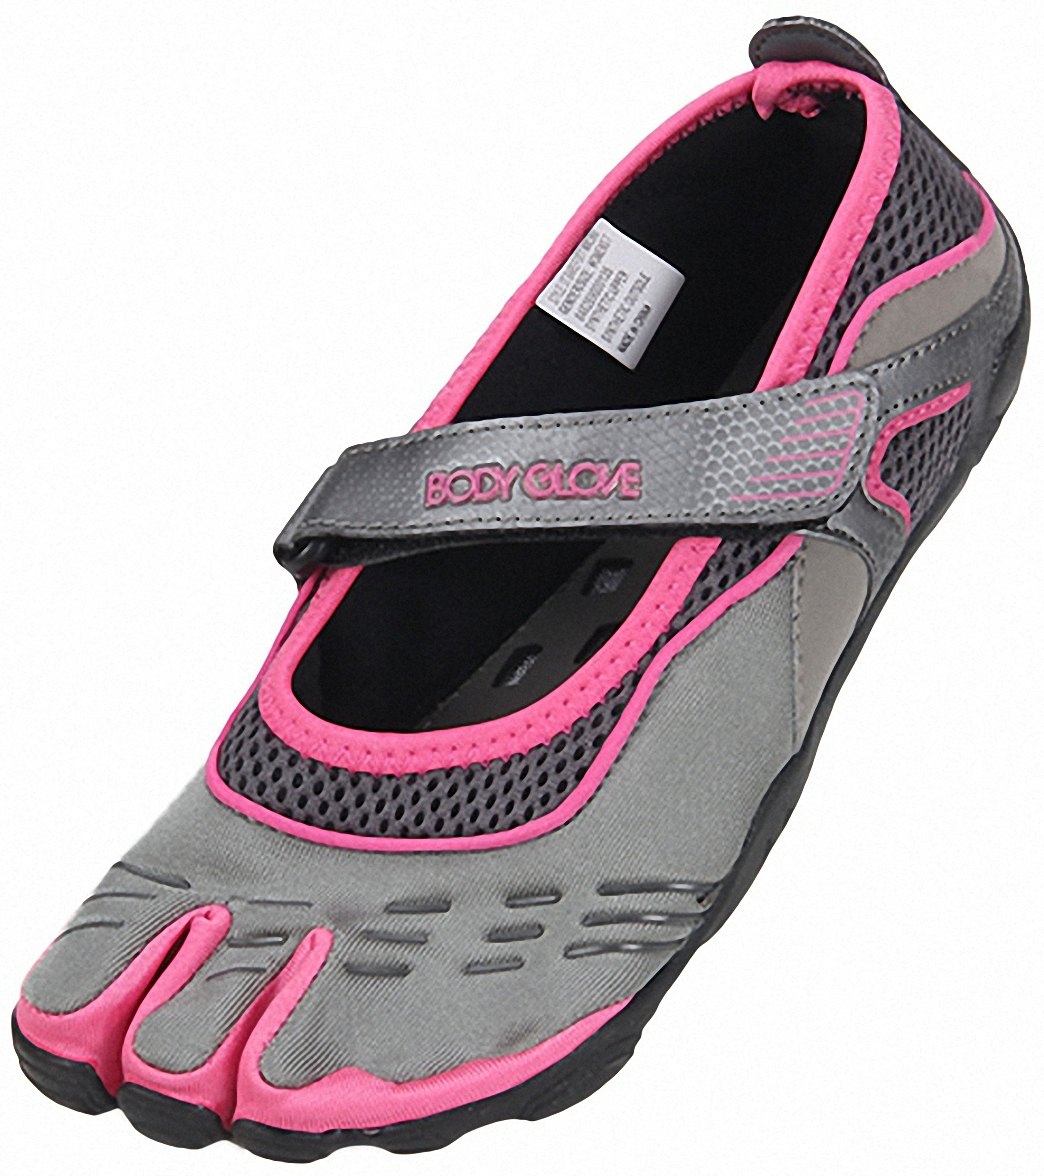 f3f8d8192679 Body Glove Women s 3T Barefoot Malibu Water Shoes at SwimOutlet ...